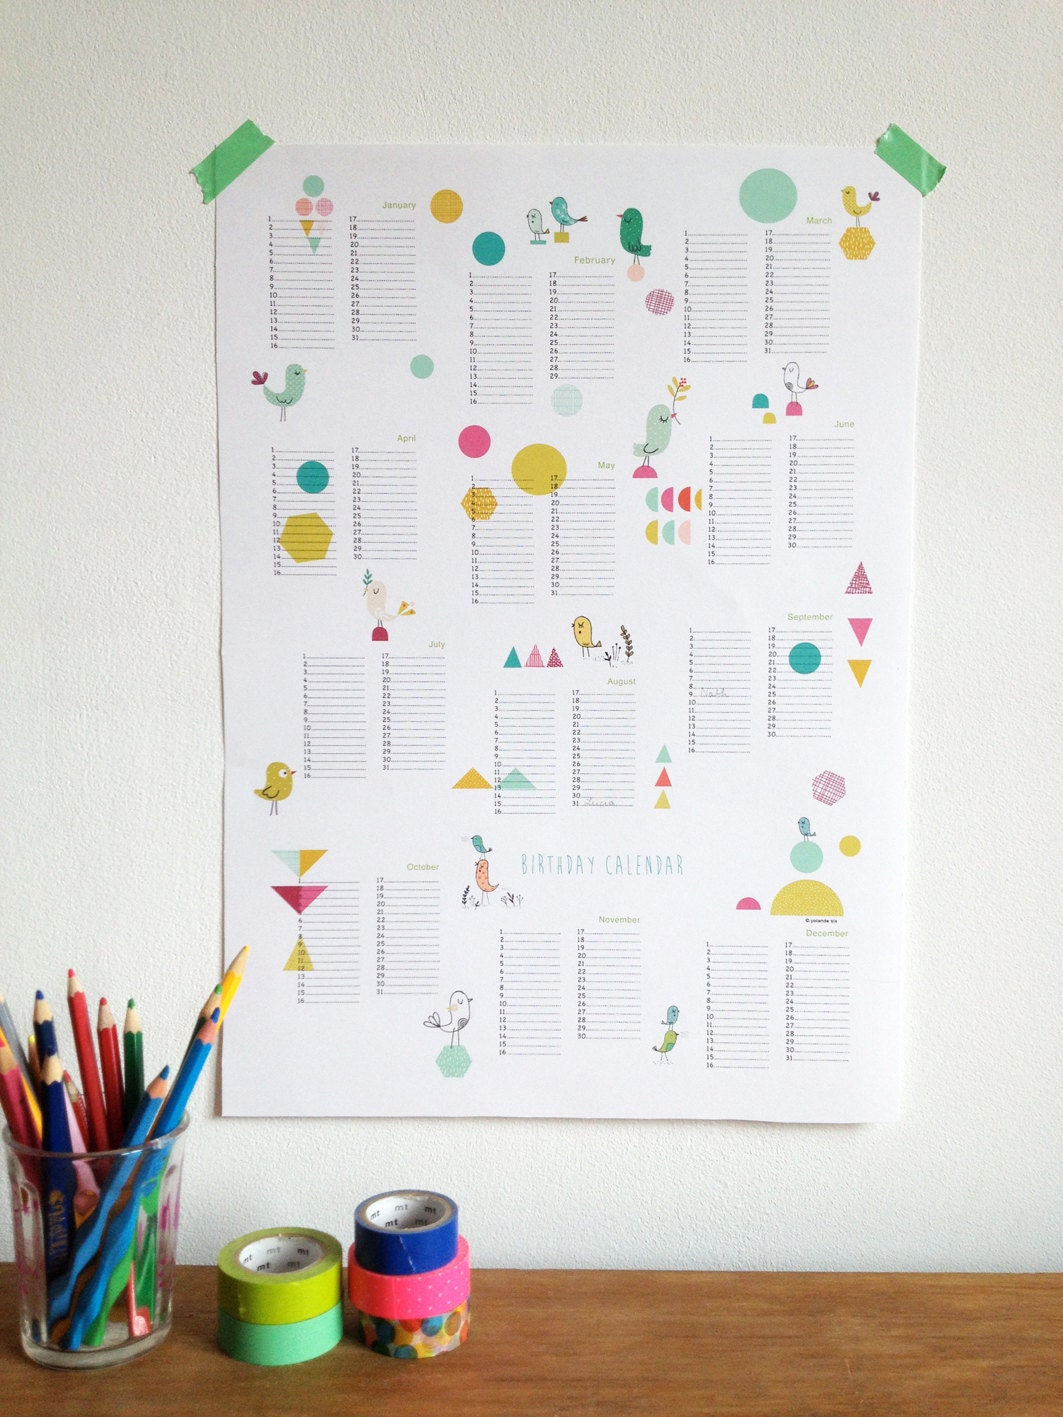 Calendar Poster Size : Perpetual calendar birthday poster size a instant